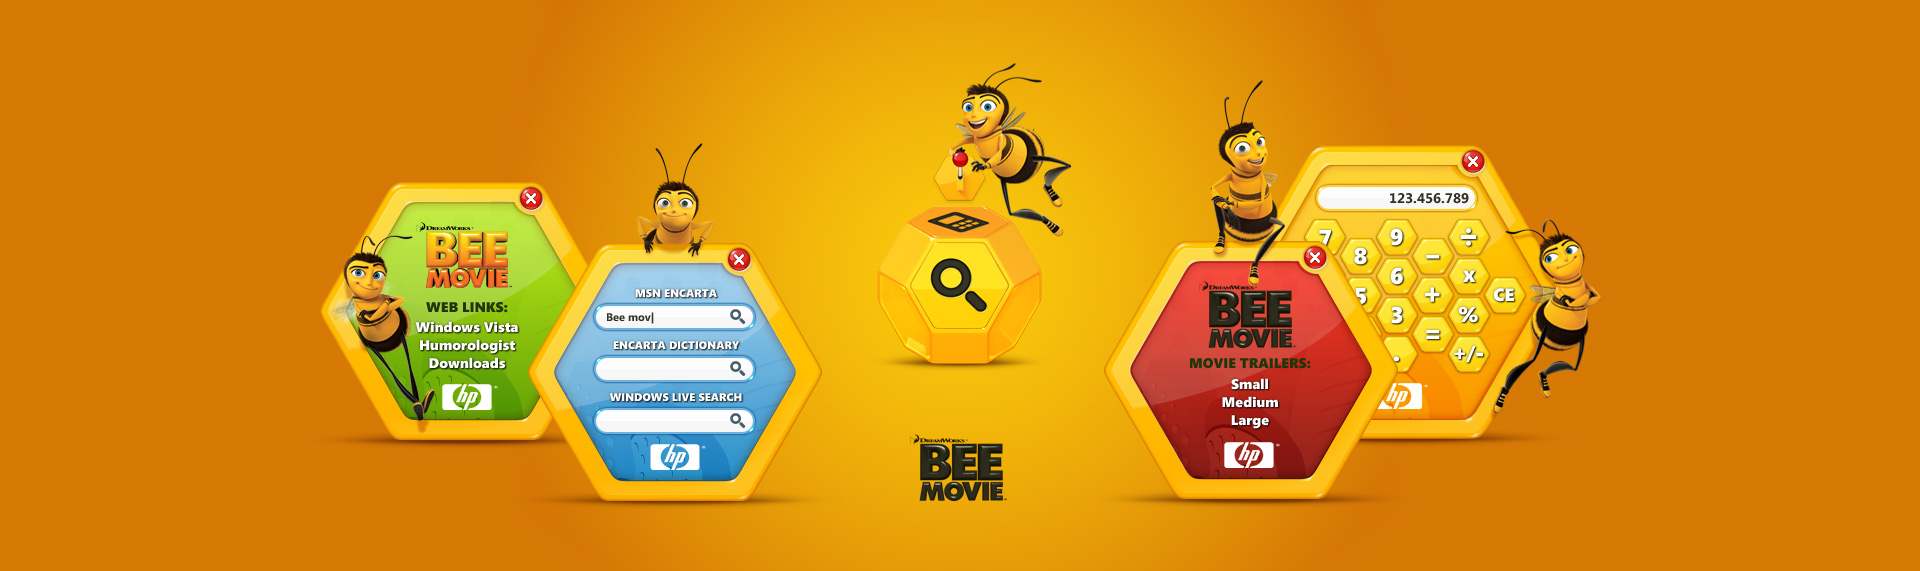 The Bee Movie  Client: HP + Microsoft (OEM Division)  Working closely with Microsoft & HP, The Skins Factory's UI design team, developed the official Bee Movie Windows Sidebar Gadget. Taking a slightly different approach, our team developed a gadget that was not only fun, but educational as well. With a special honeycomb calculator & 3 search areas that link to MSN Encarta, MSN Dictionary & Windows Live Search - you have the world's information at your fingertips. Designed for children of all ages.